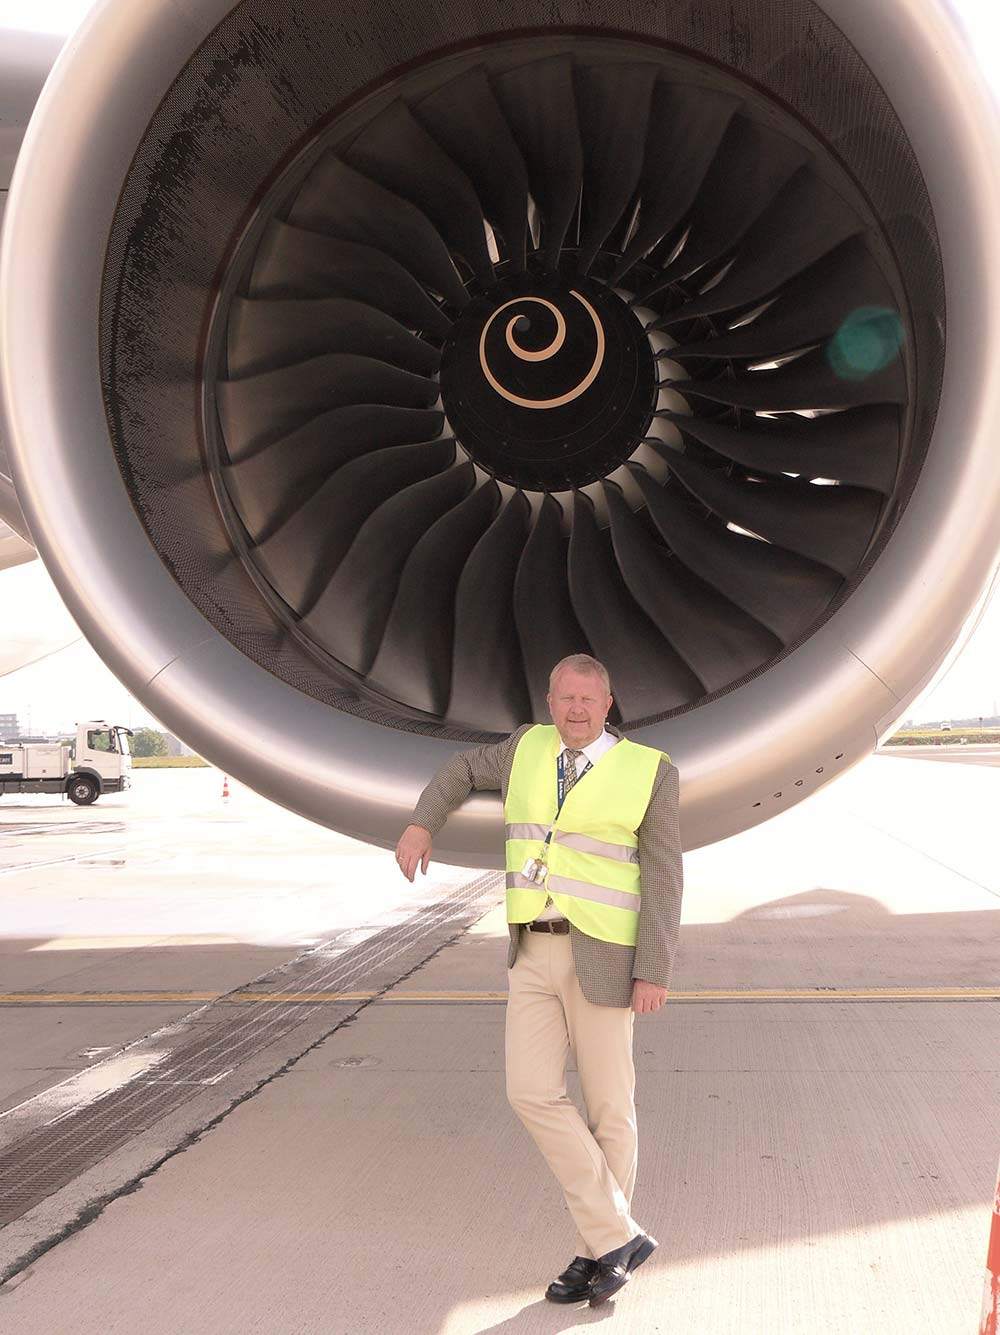 Michael Kalinowsky in front of an aircraft engine